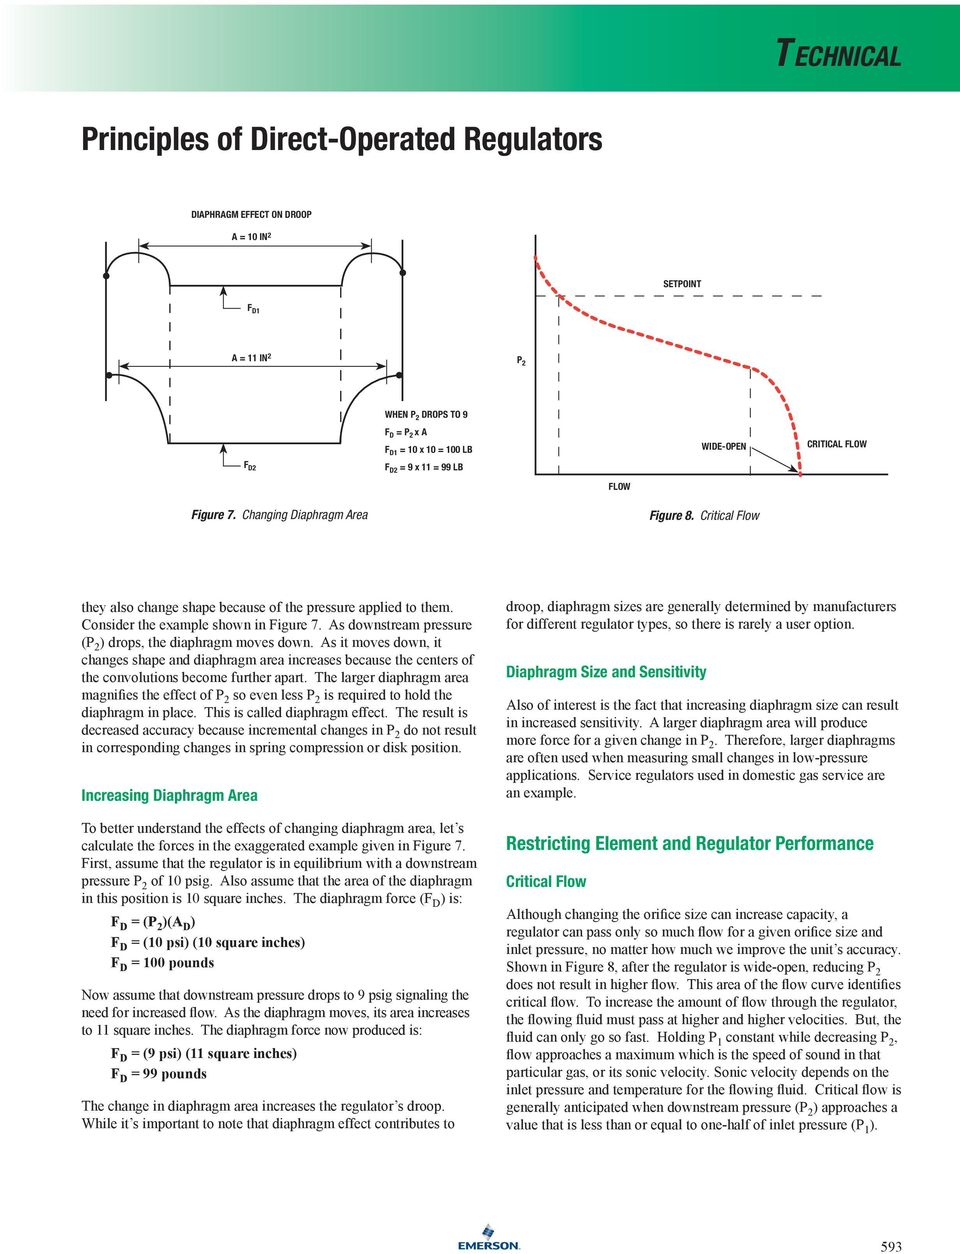 Critical Flow CRITICAL FLOW they also change shape because of the pressure applied to them. Consider the example shown in Figure 7. As downstream pressure (P 2 ) drops, the diaphragm moves down.